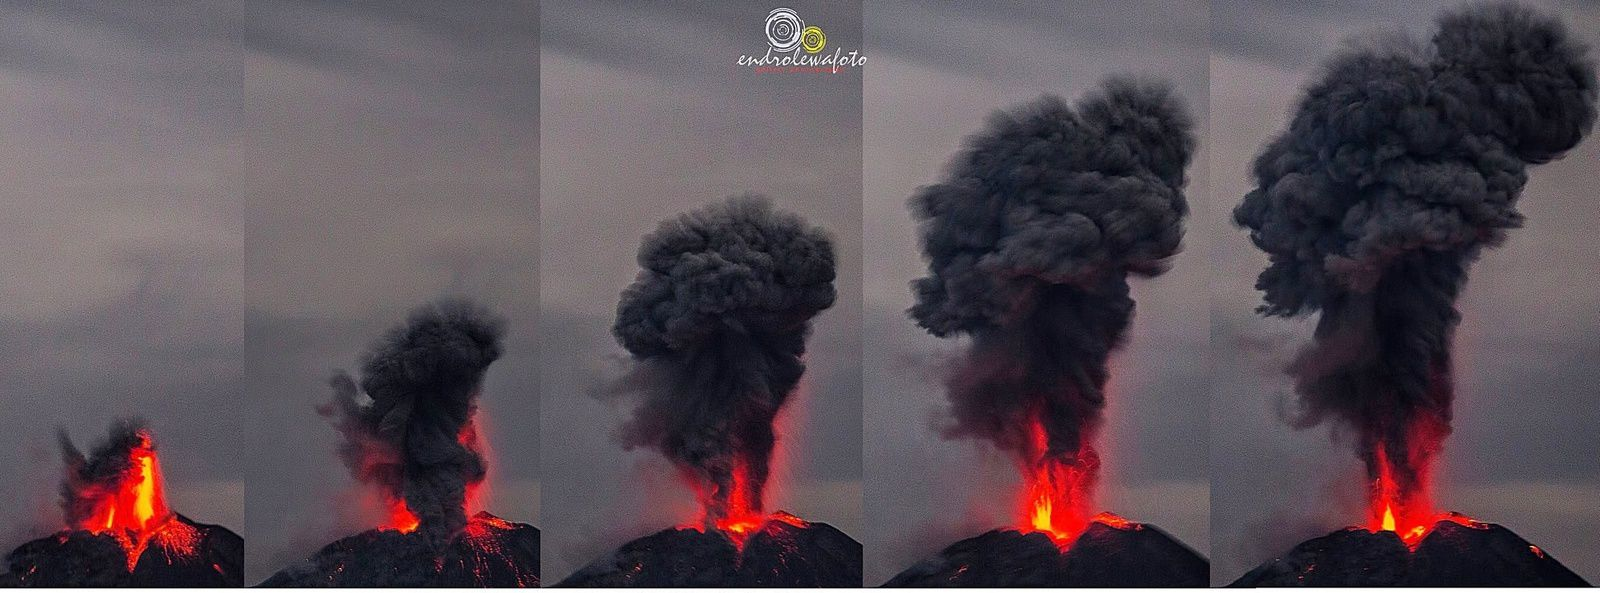 Sinabung - the eruptive sequence of the 07.05.2017 / 0h15 - photos Endro Lewa - a click to see full screen